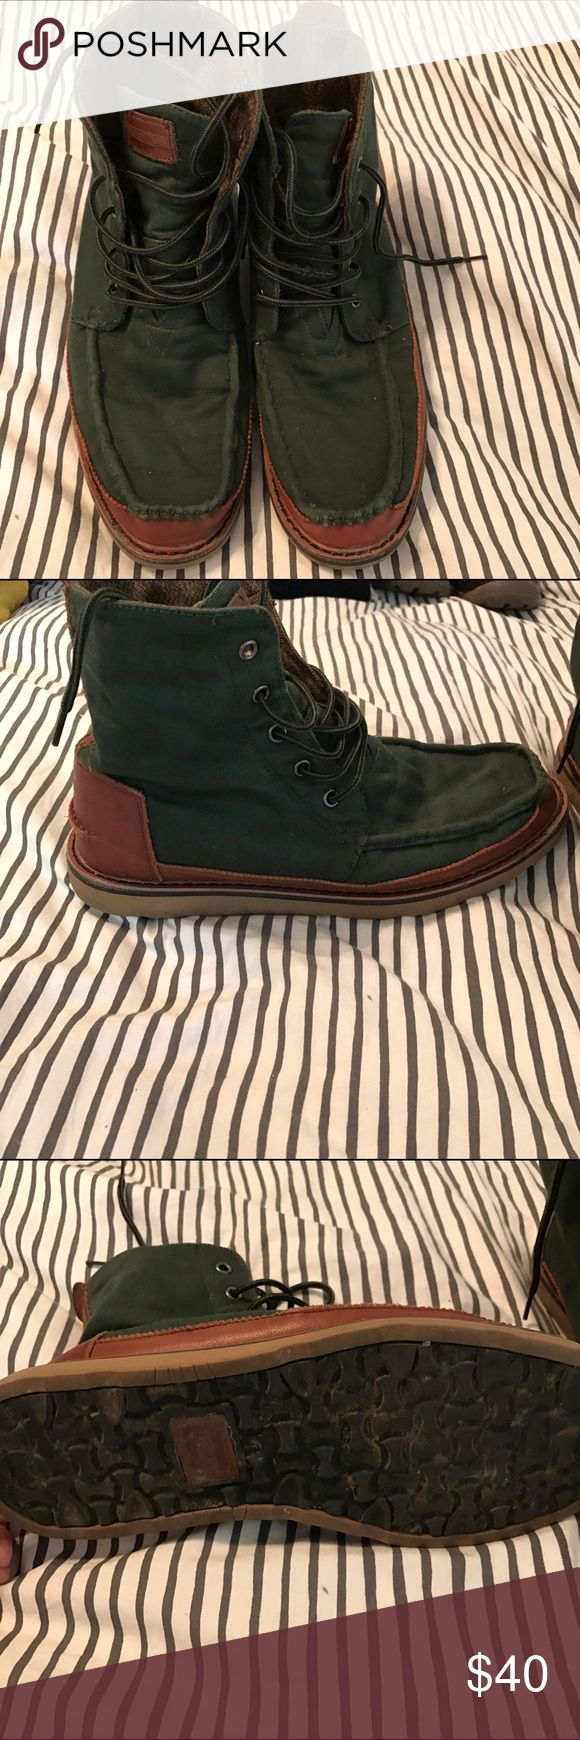 TOMS Boots TOMS men's military style boots. Great condition. TOMS Shoes Boots